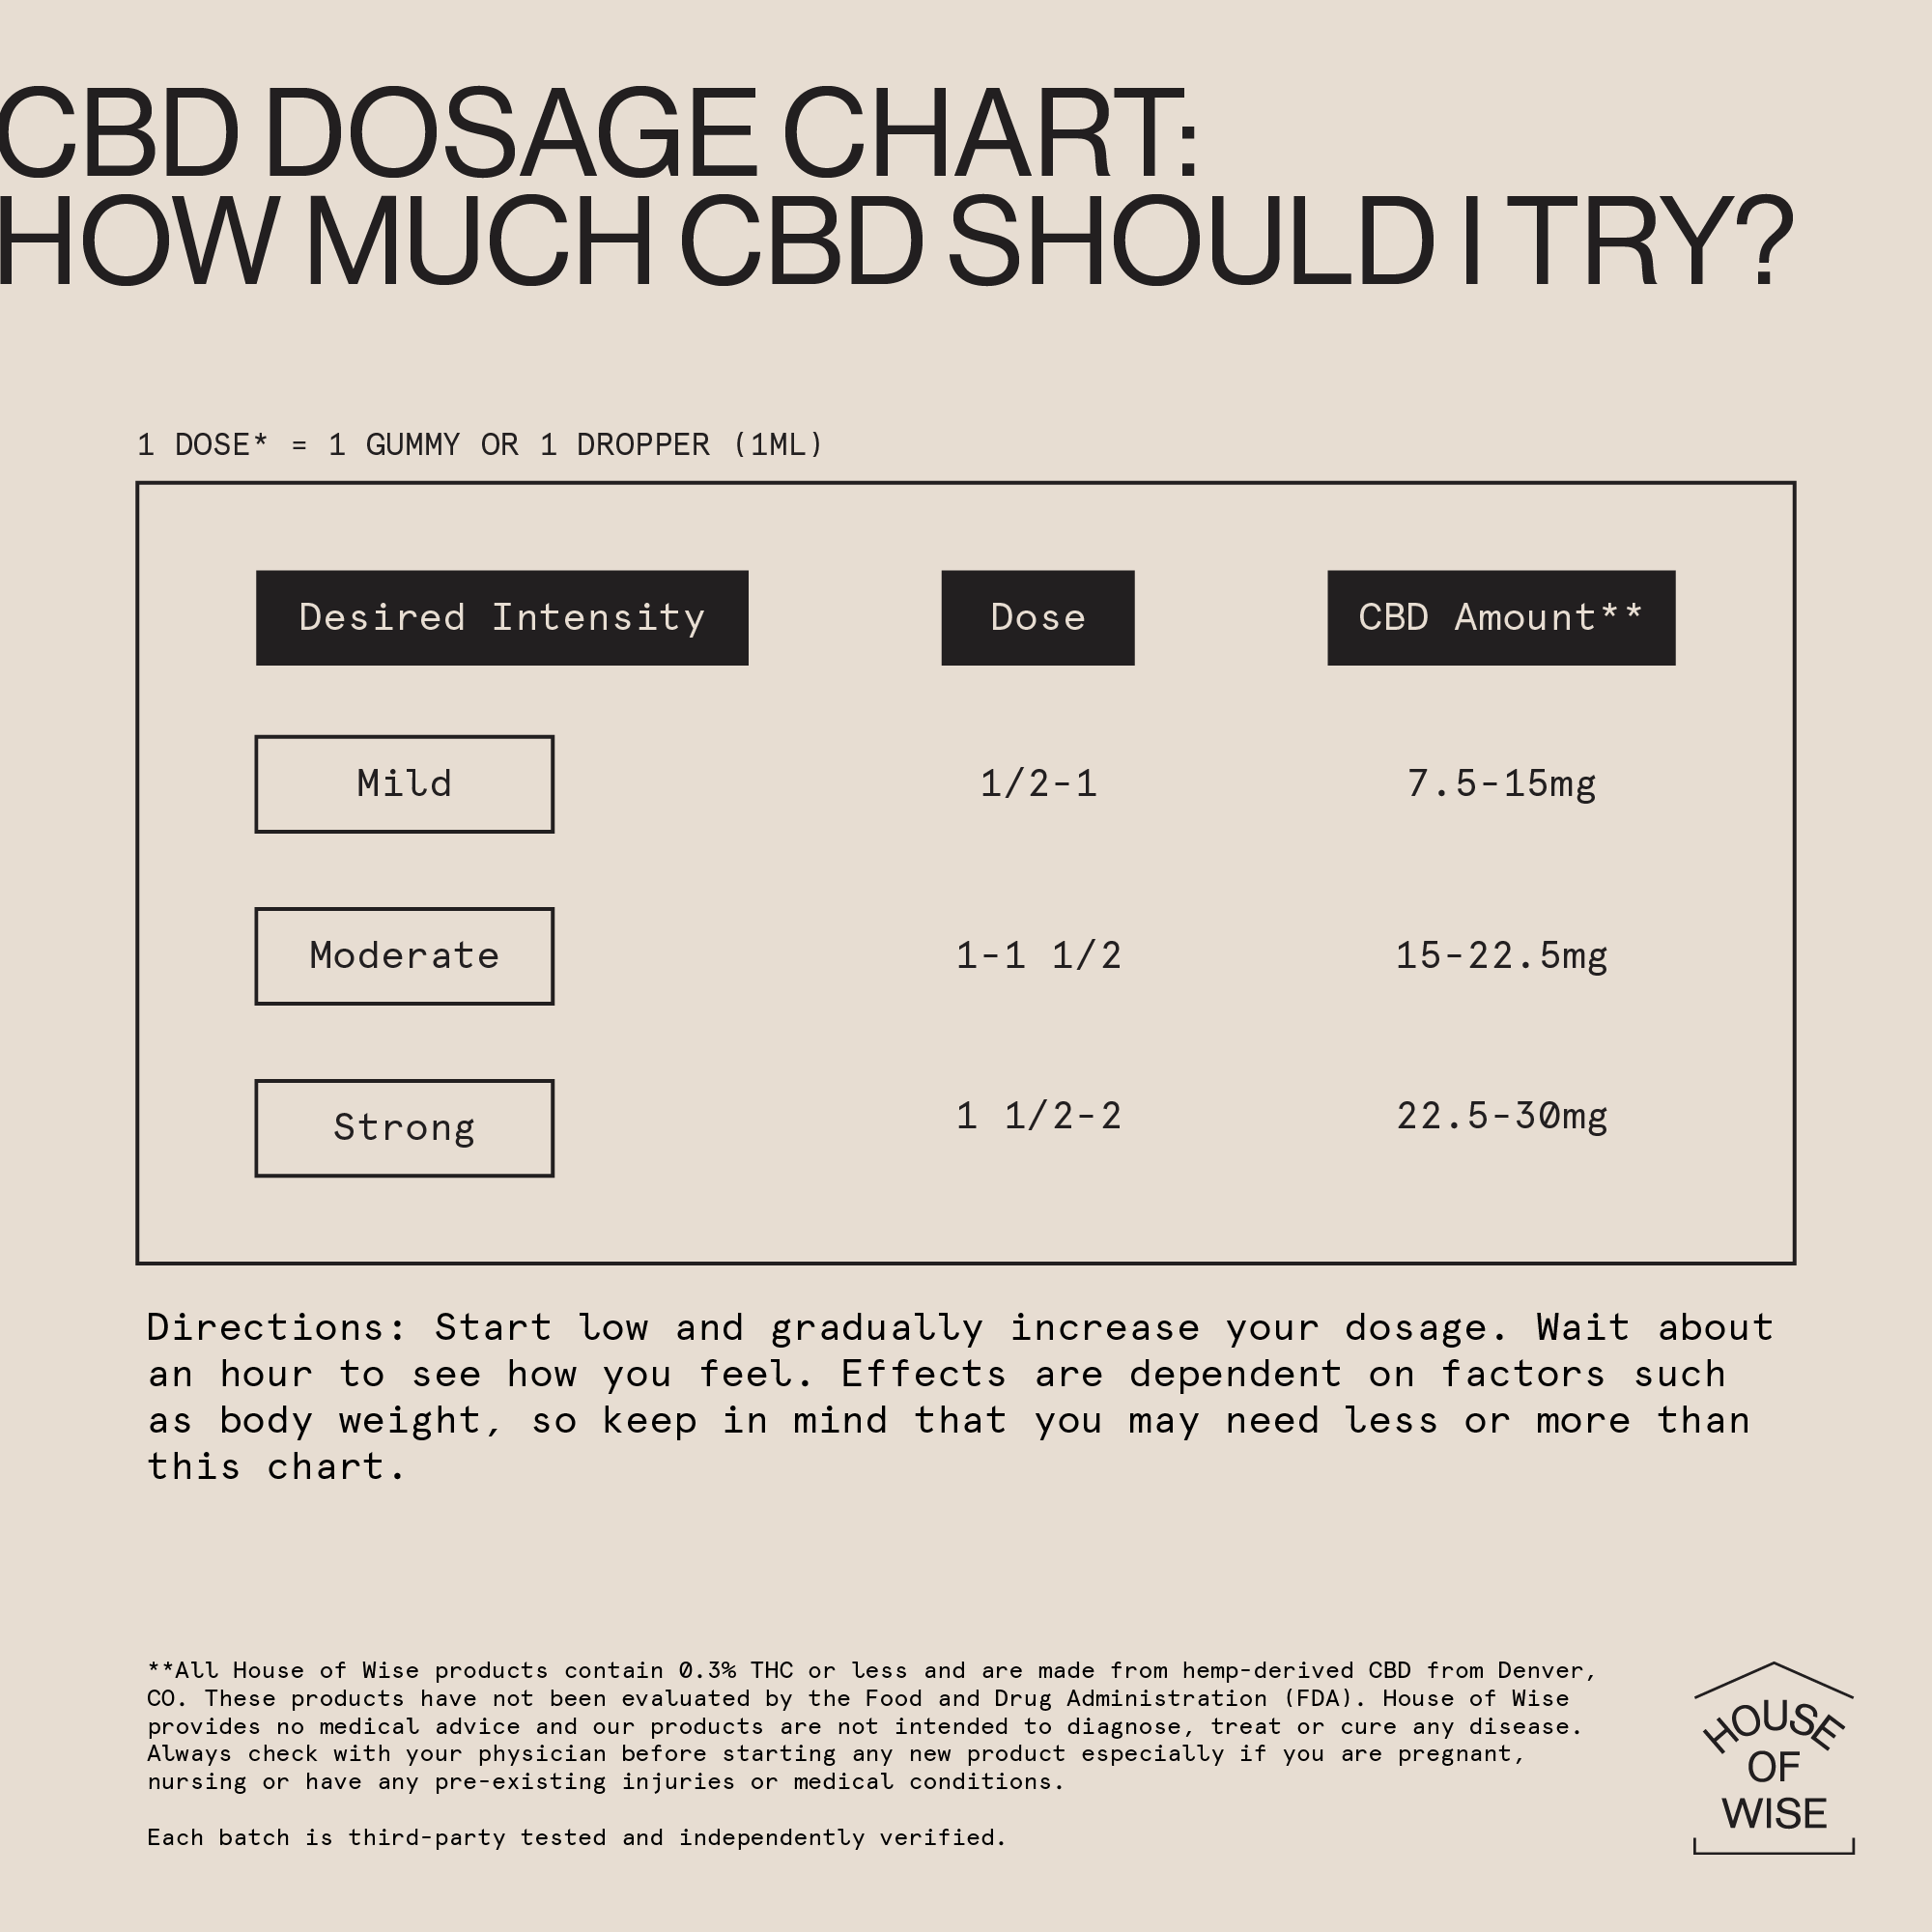 CBD Dosage Chart for House of Wise products: How much CBD should I try?